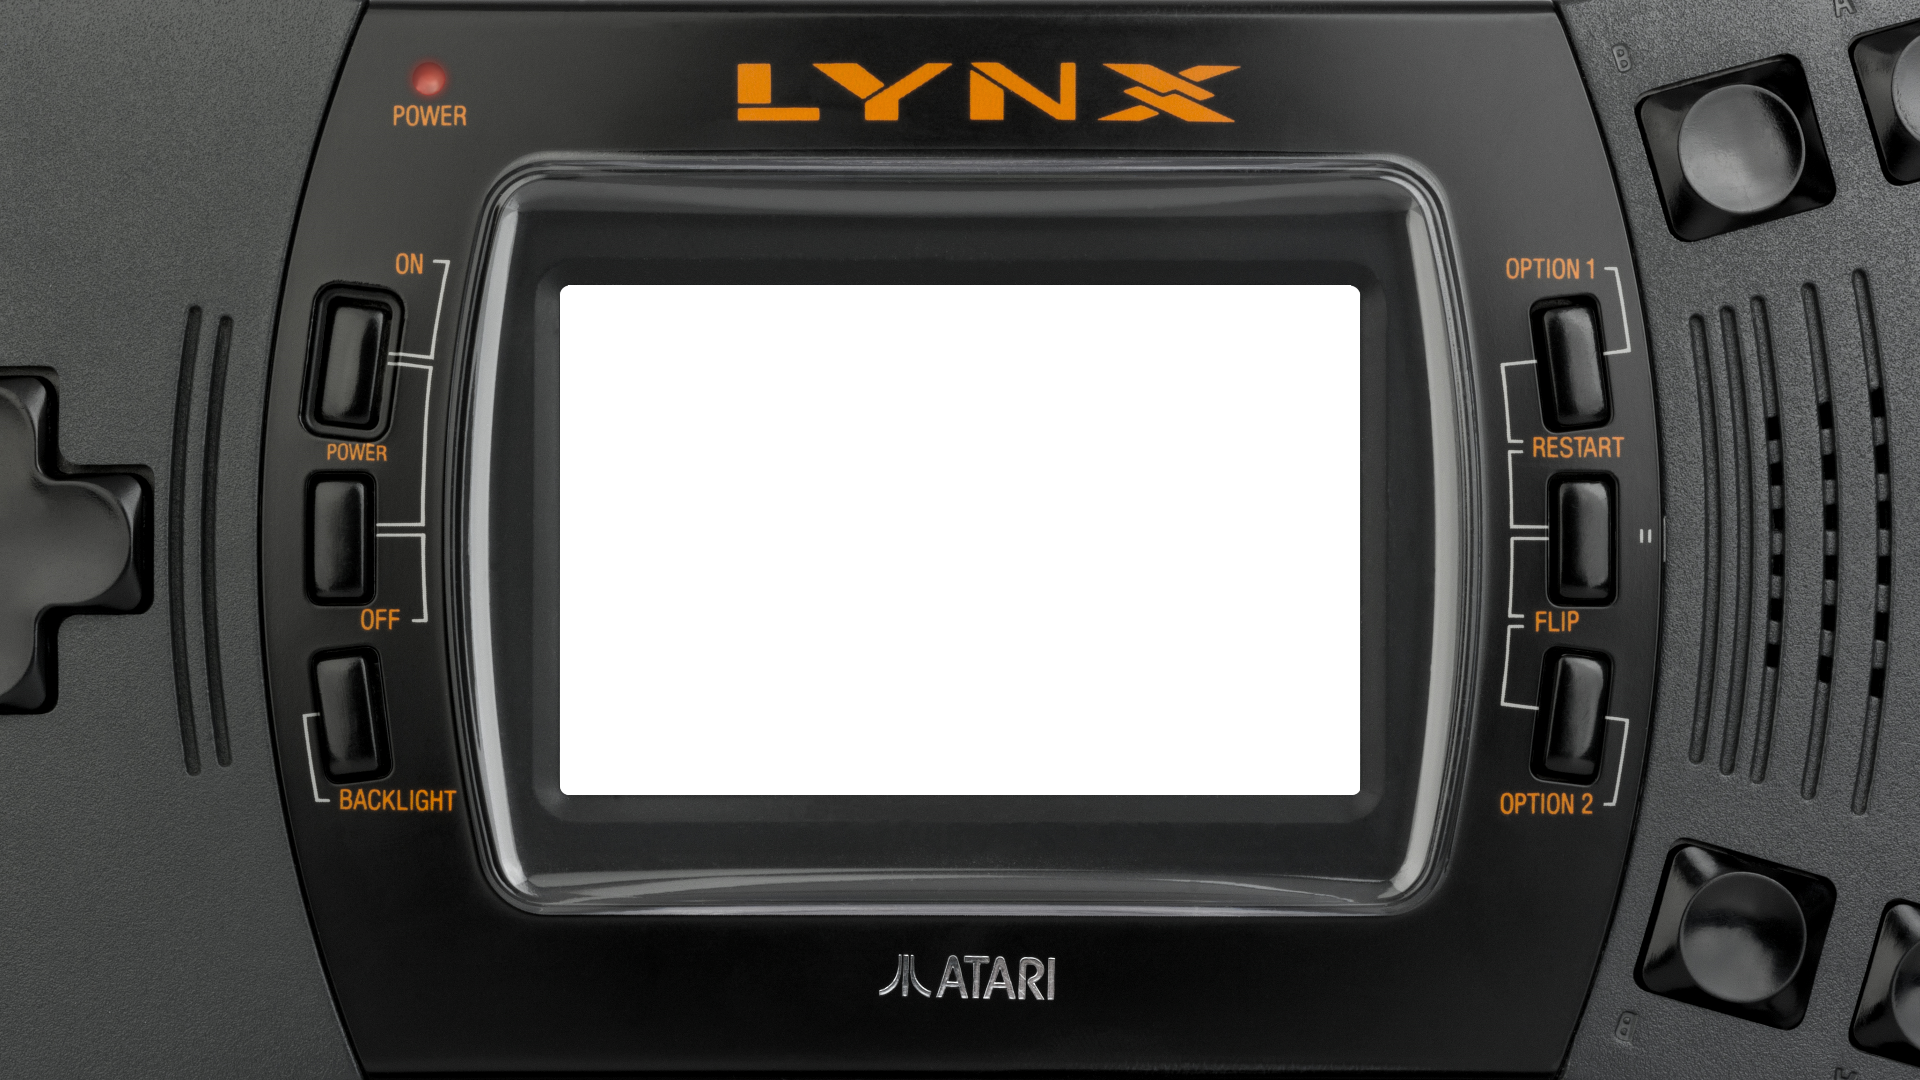 Atari Lynx II with Rounded corners